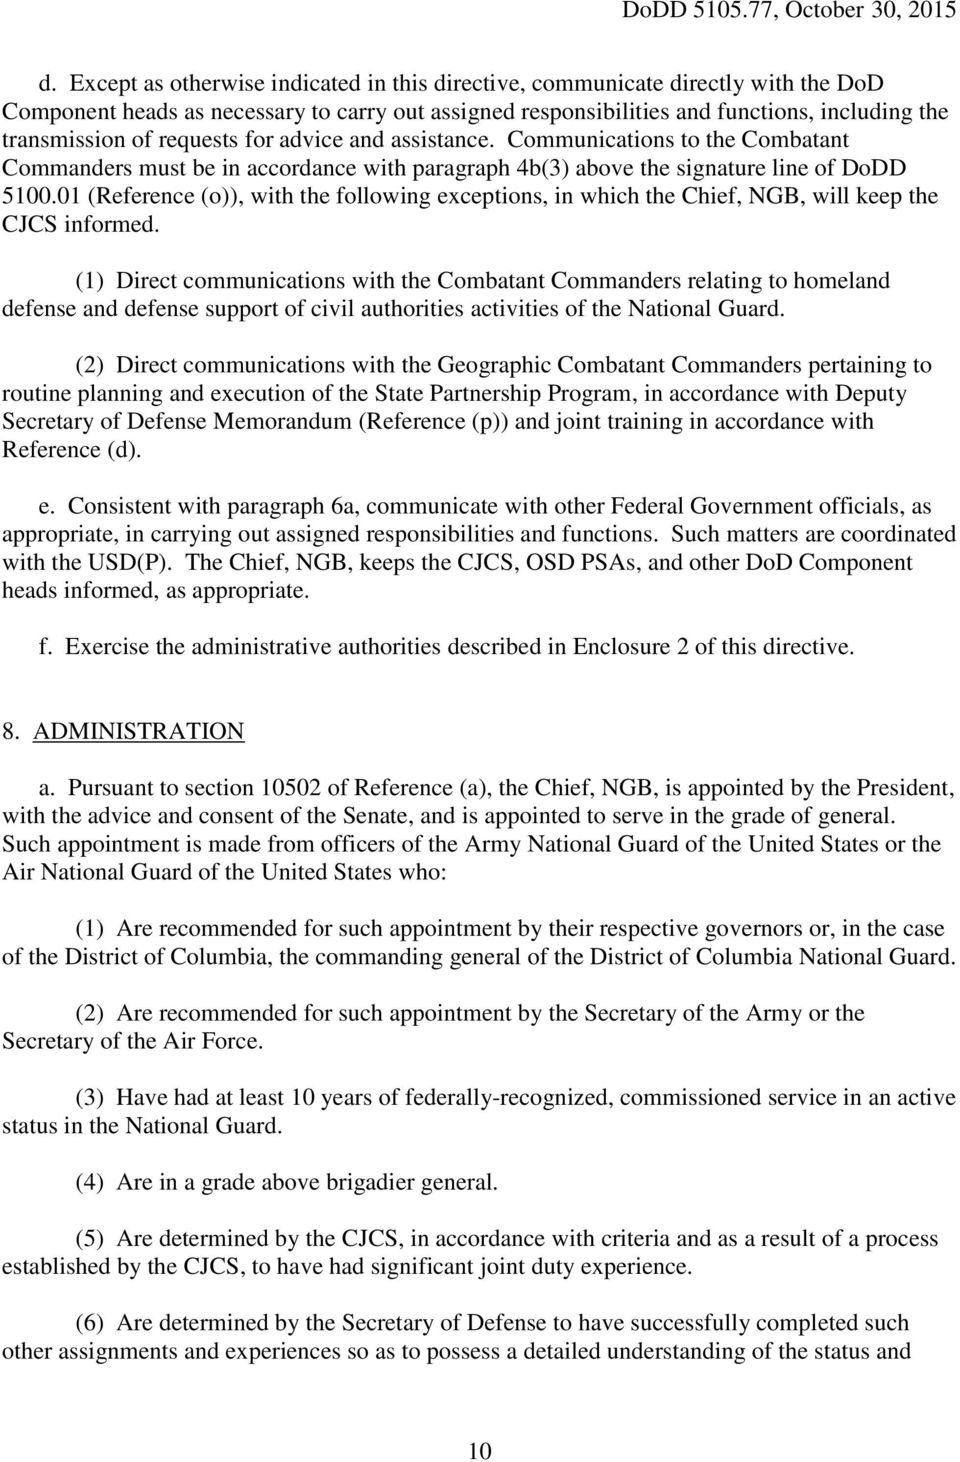 01 (Reference (o)), with the following exceptions, in which the Chief, NGB, will keep the CJCS informed.